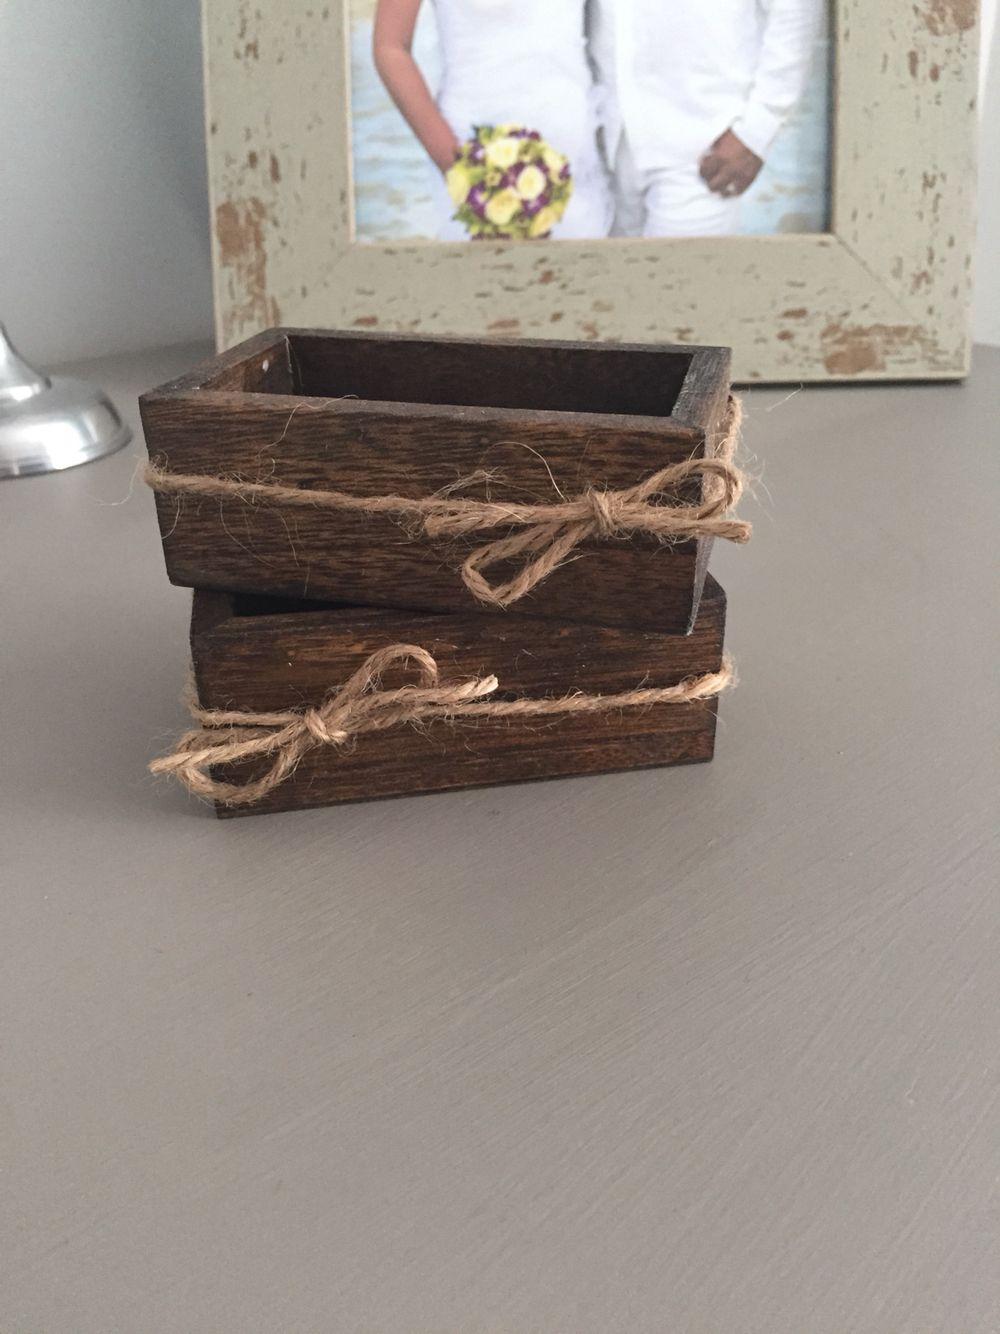 Rustic Business Card Holders Find More On Fb Rustic Loveliveandcreate Etsy E Business Card Displays Rustic Business Cards Wooden Business Card Holder